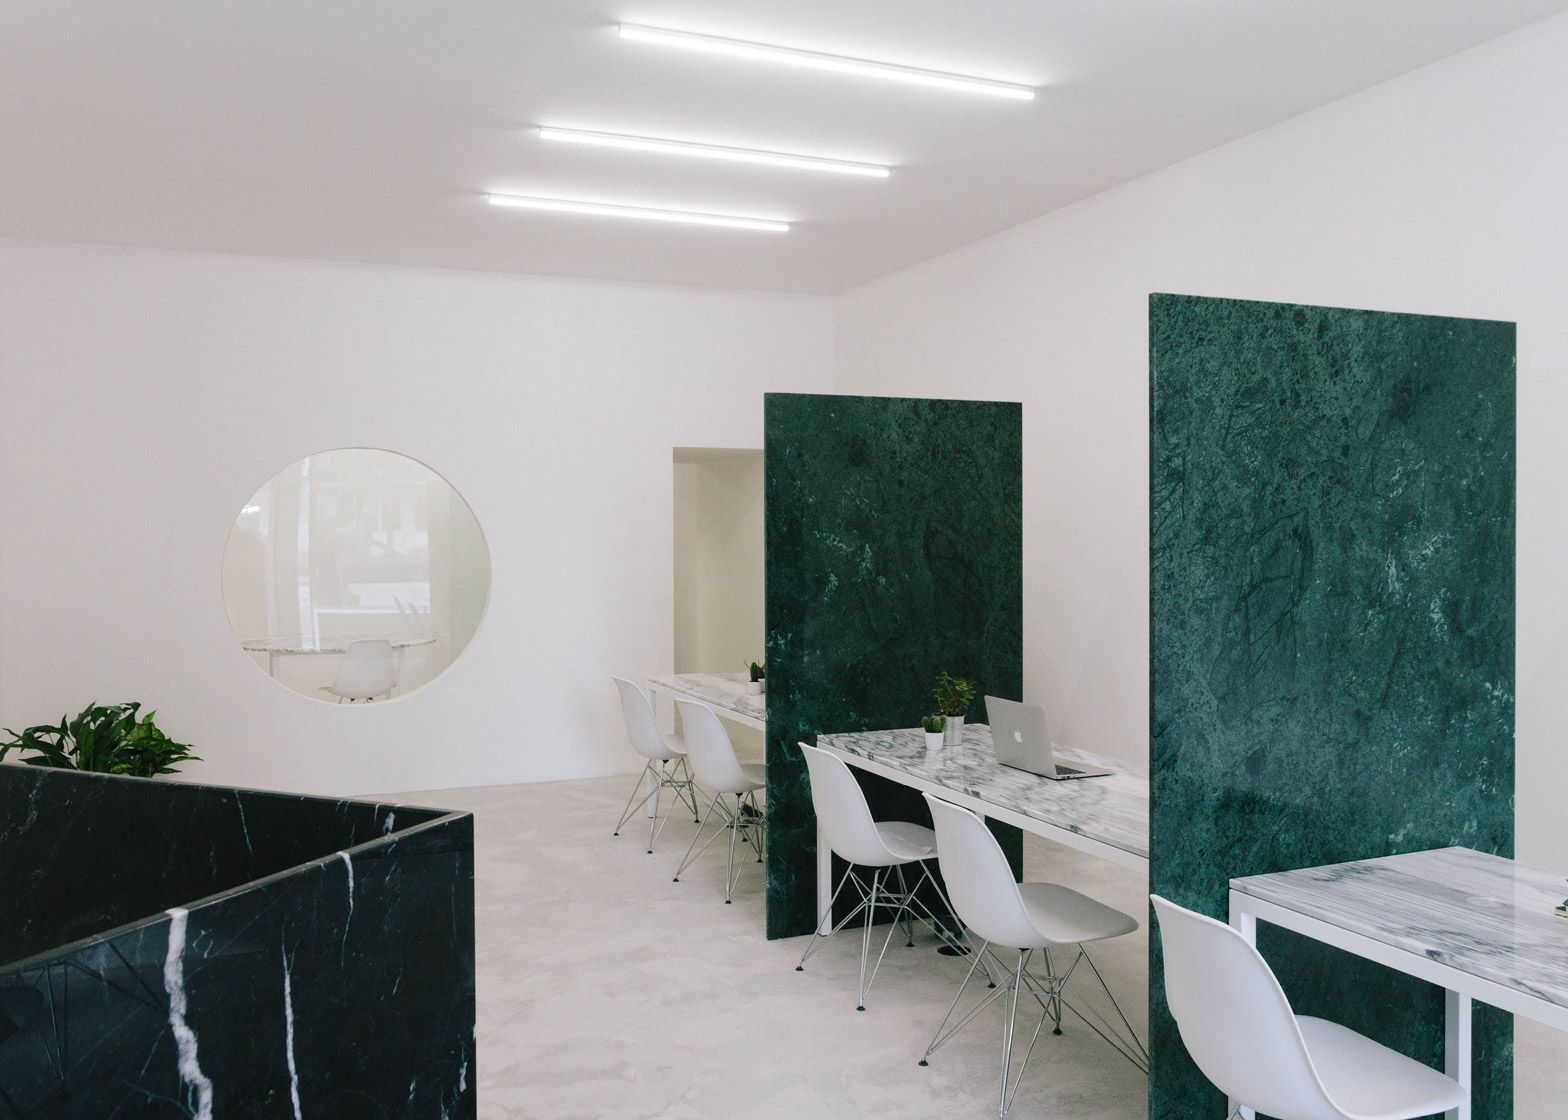 Estate Agents Featuring Partitions And Furniture Made From